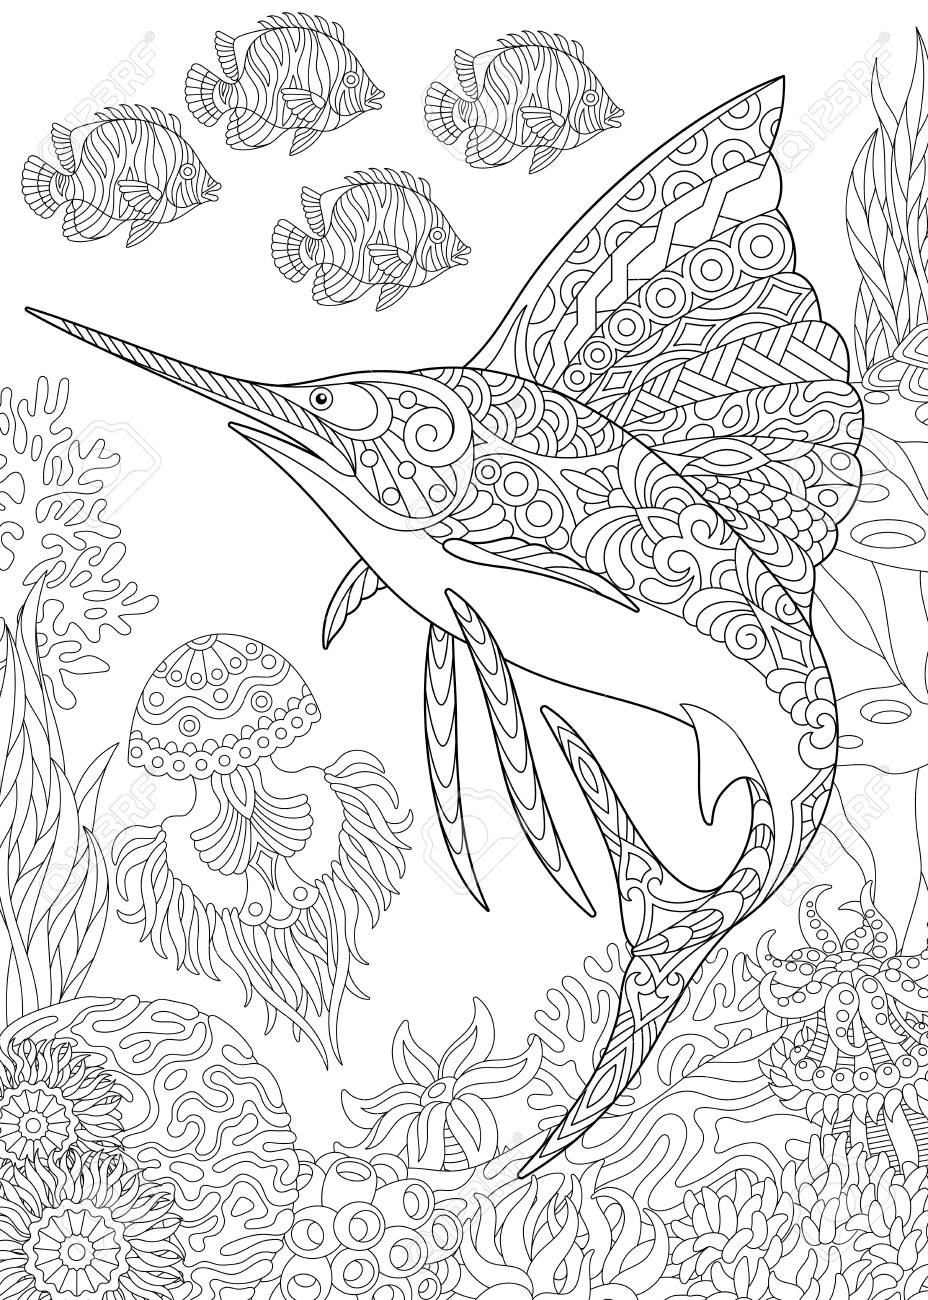 Coloring Page For Adult Book Underwater Background With Sailfish Jellyfish Tropical Fishes